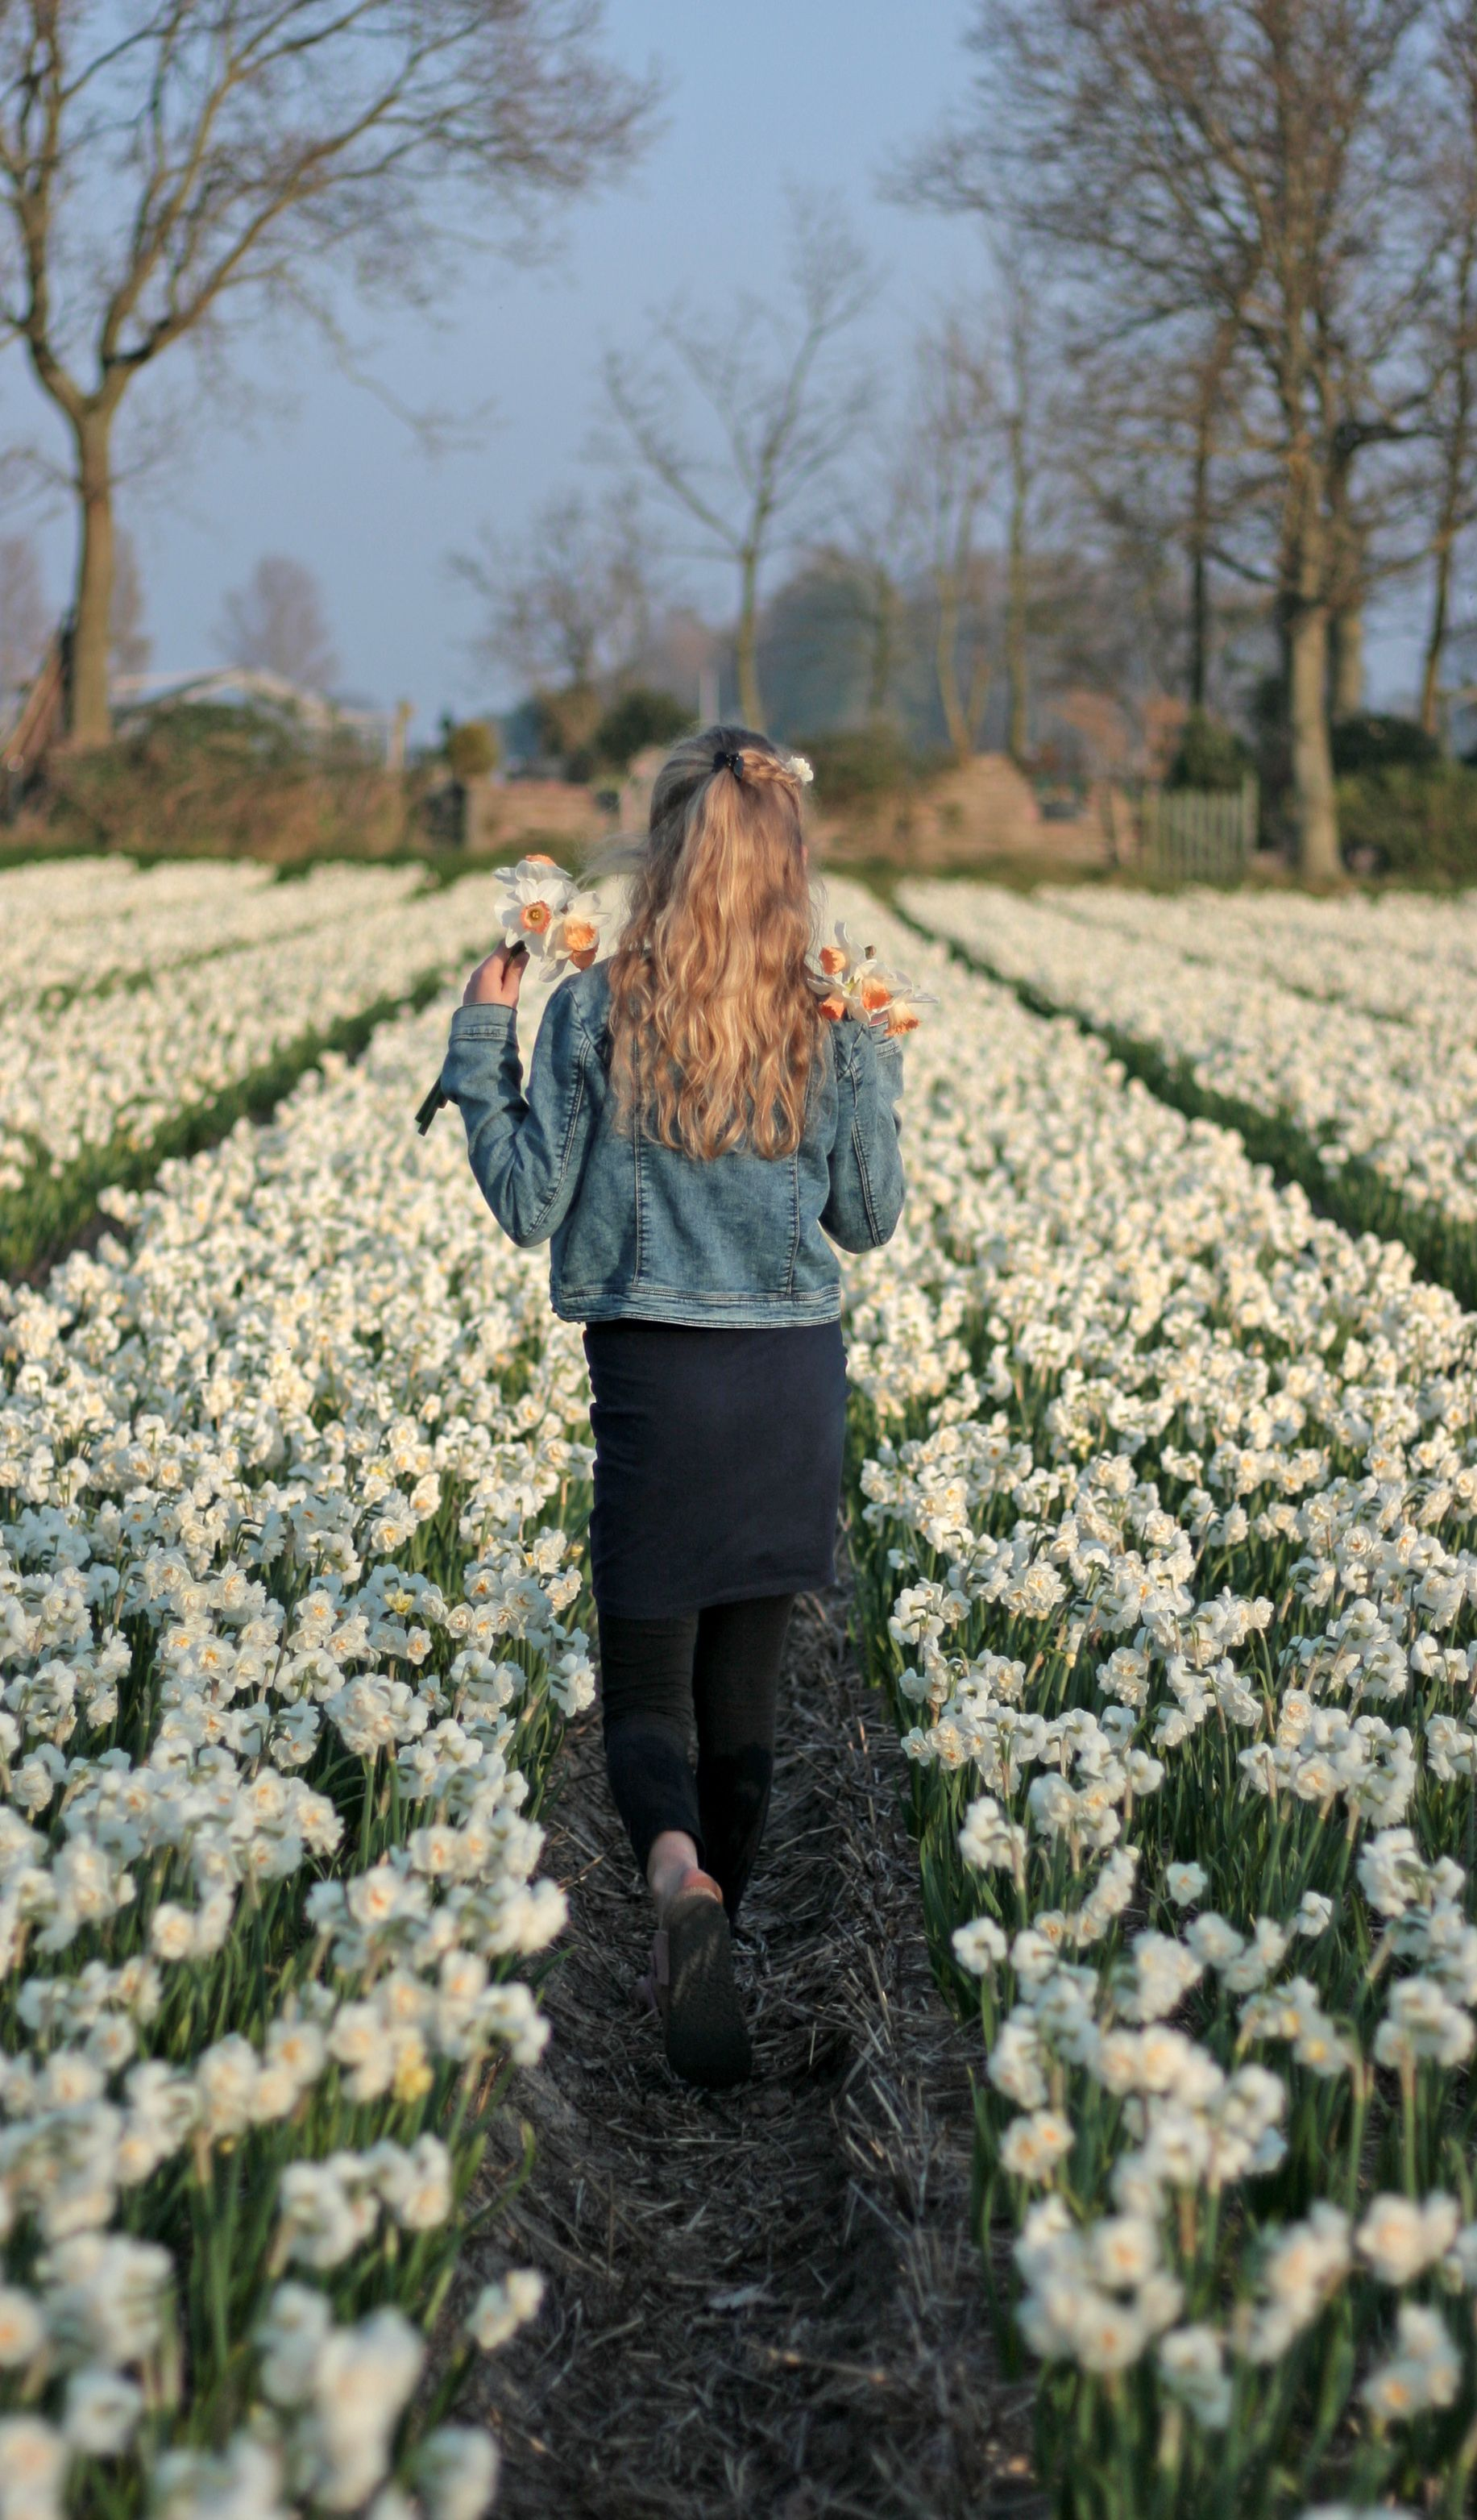 My Little Girl Walking In Endless Fields Of Daffodils Too Bad You Cannot Smell The Flowers On This Pictures So Lovely Daf Daffodils Bridal Crown Flower Farm